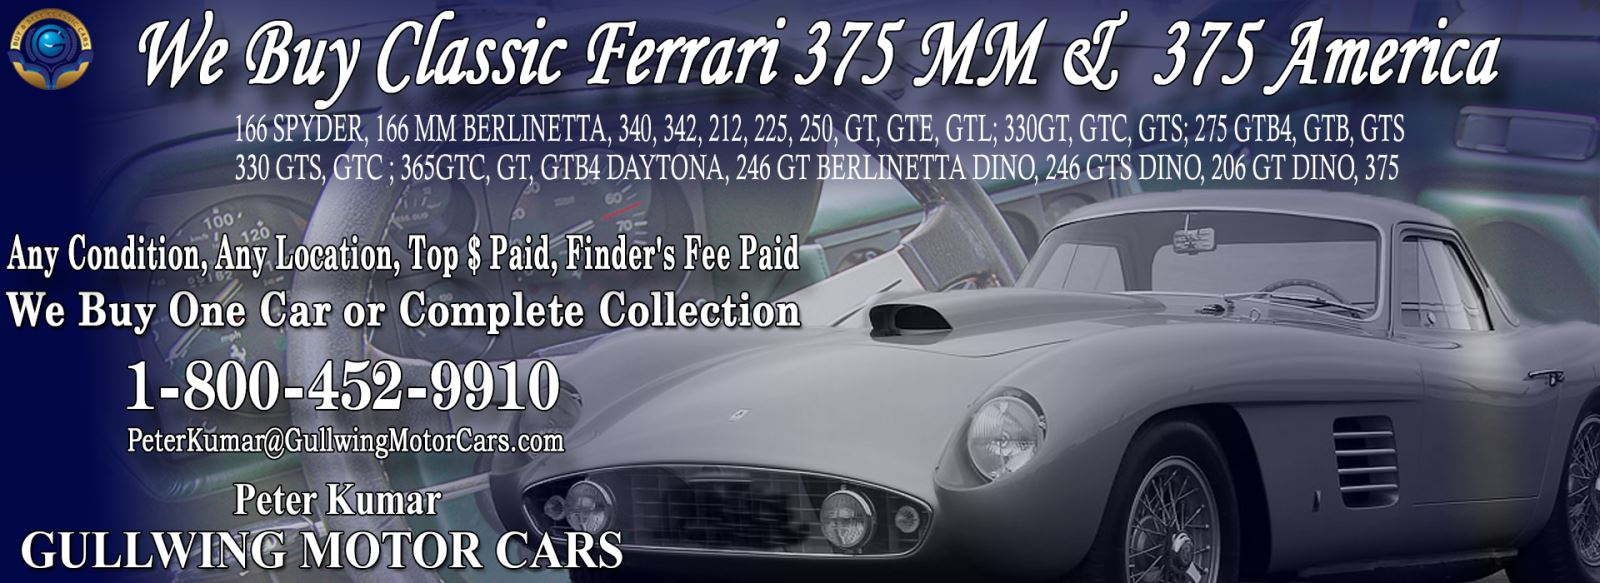 Classic Ferrari 375 MM for sale, we buy vintage Ferrari 375MM. Call Peter Kumar. Gullwing Motor